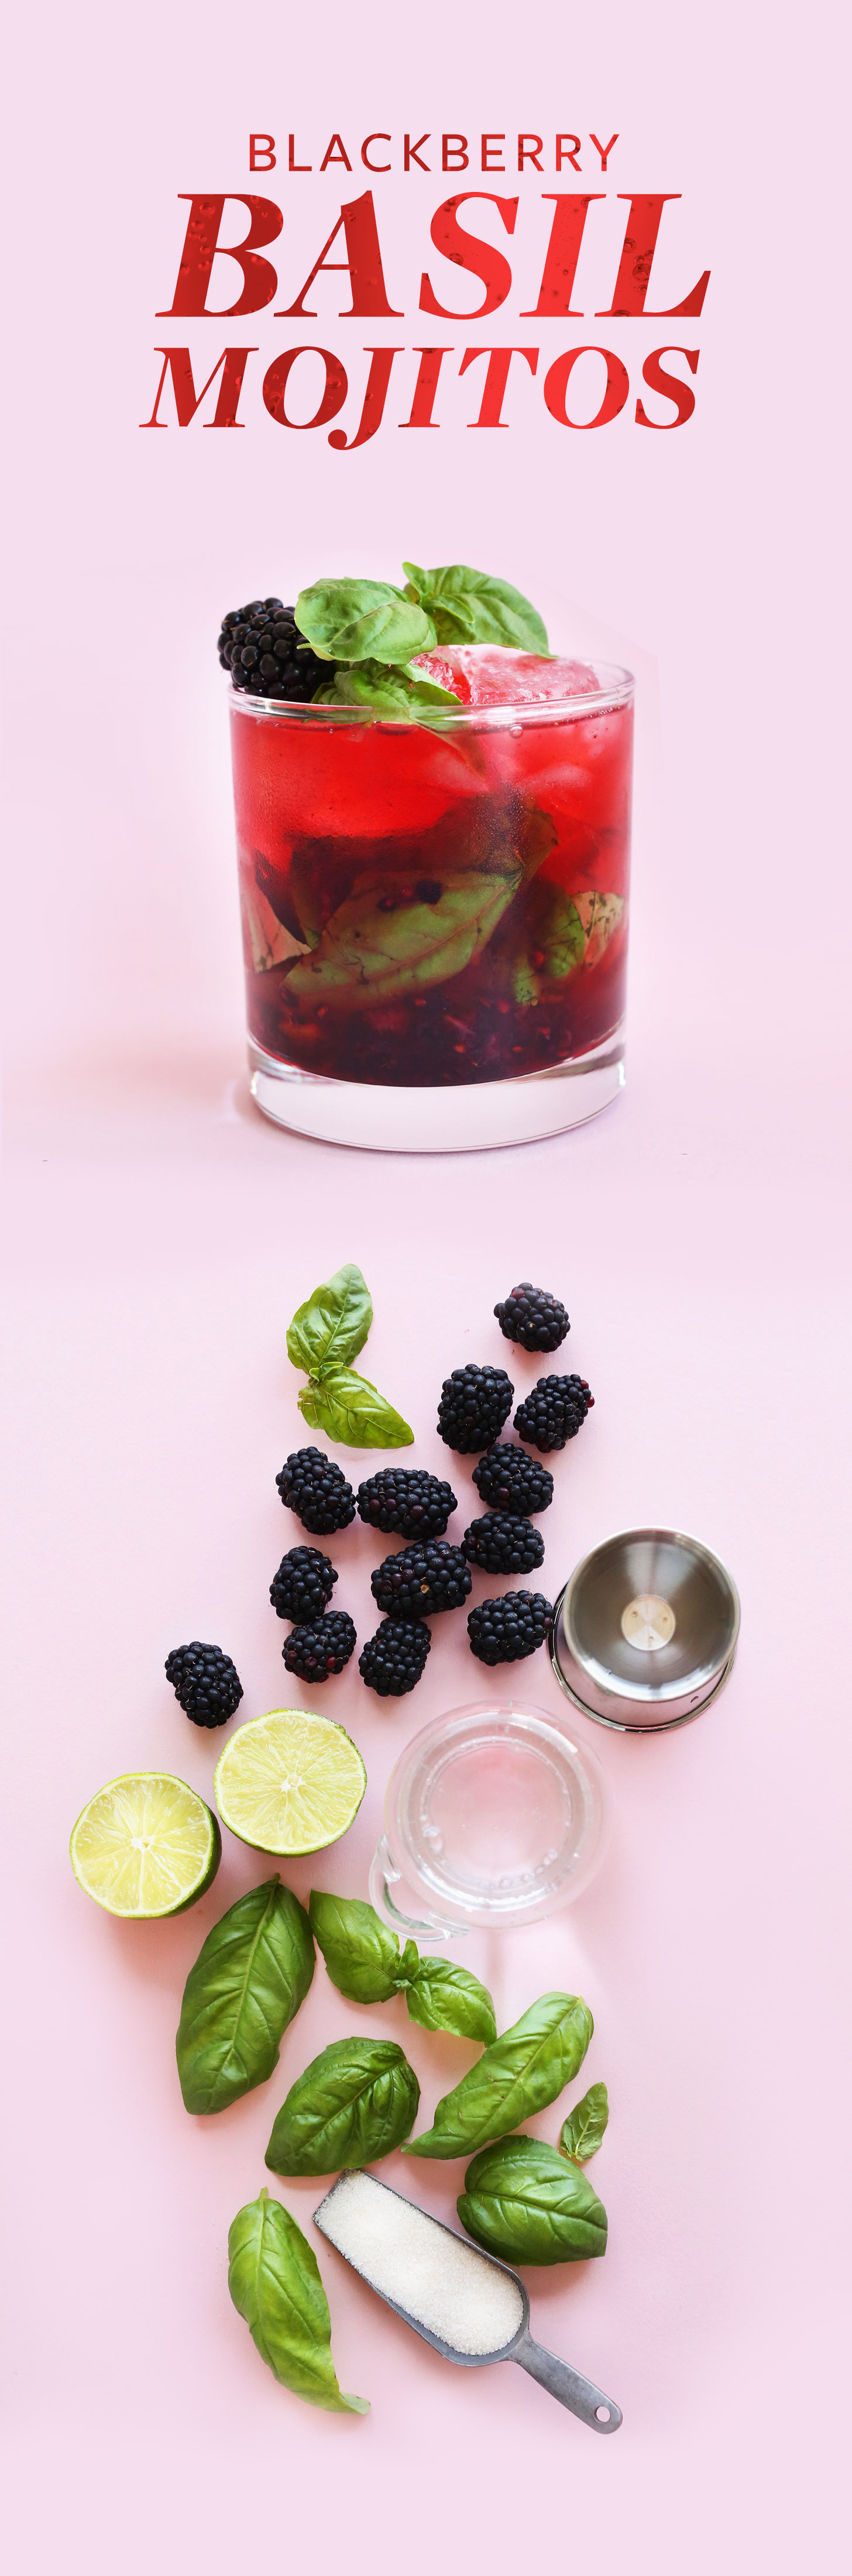 Glass of Blackberry Basil Mojito and ingredients used to make it